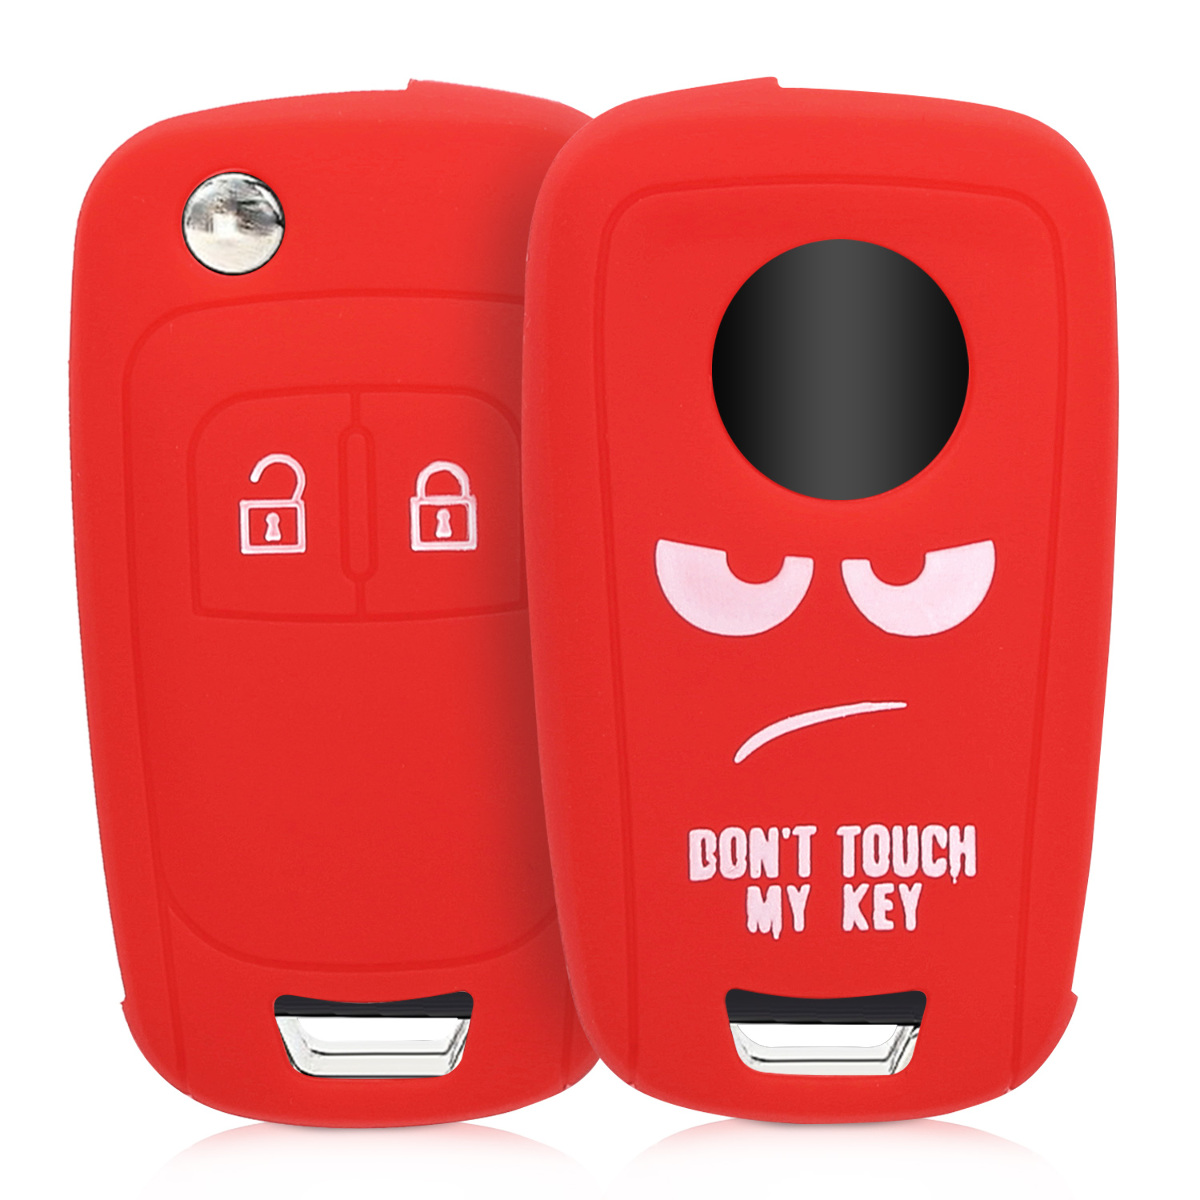 Red Silicone Protective Key Fob Cover for Suzuki 2 Button Car Key Keyless Go kwmobile Car Key Cover for Suzuki